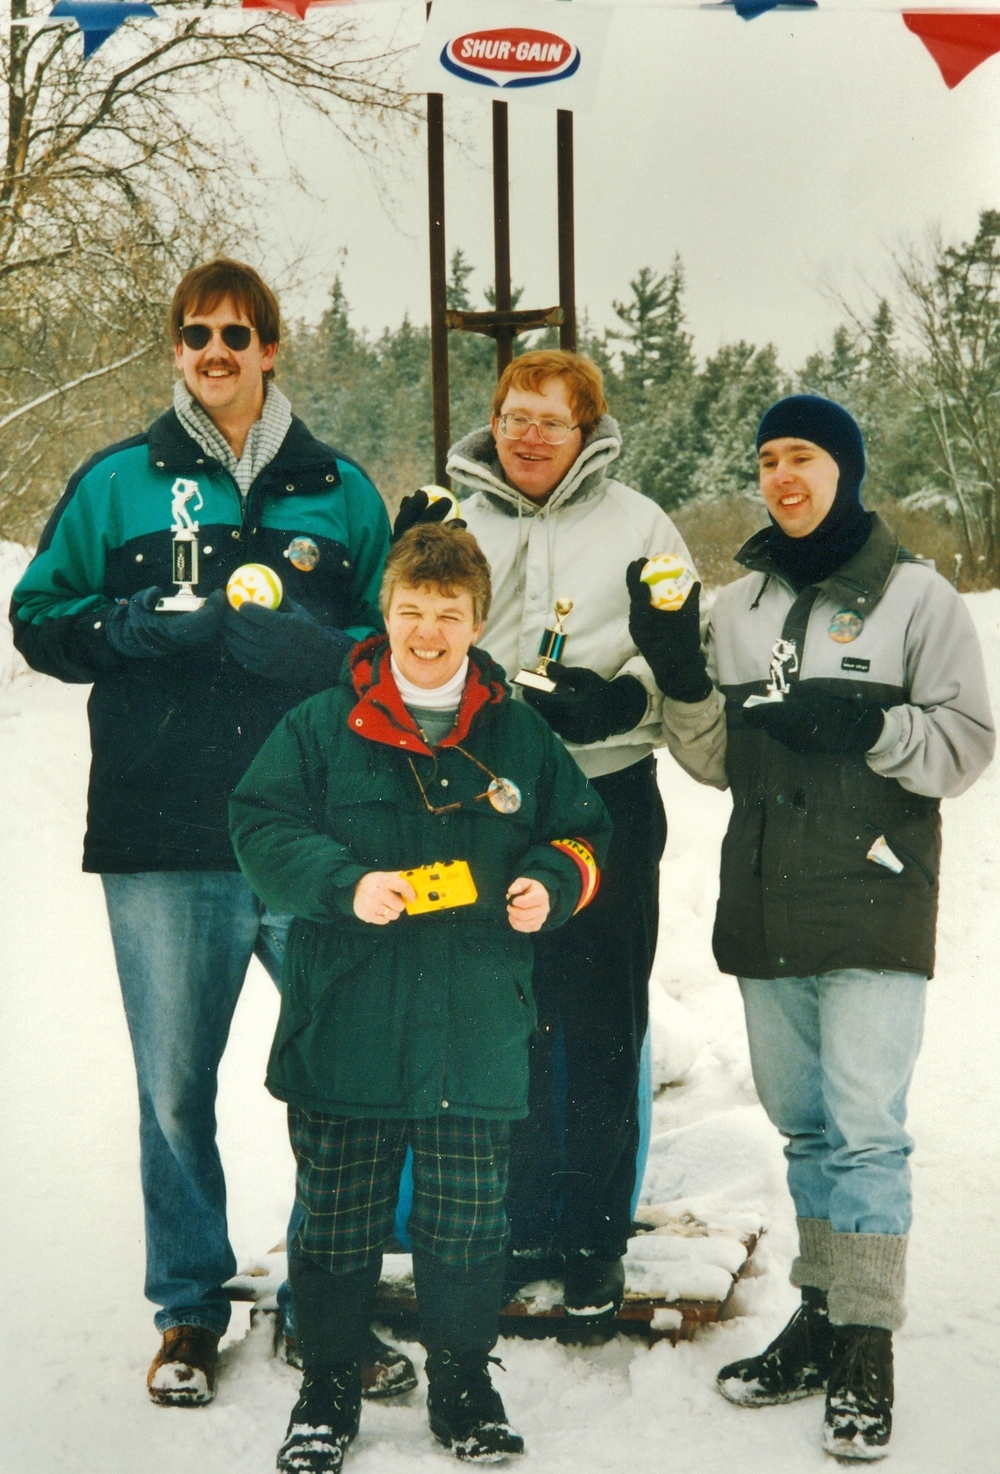 Cathie Jones with winners of the Sno-golf